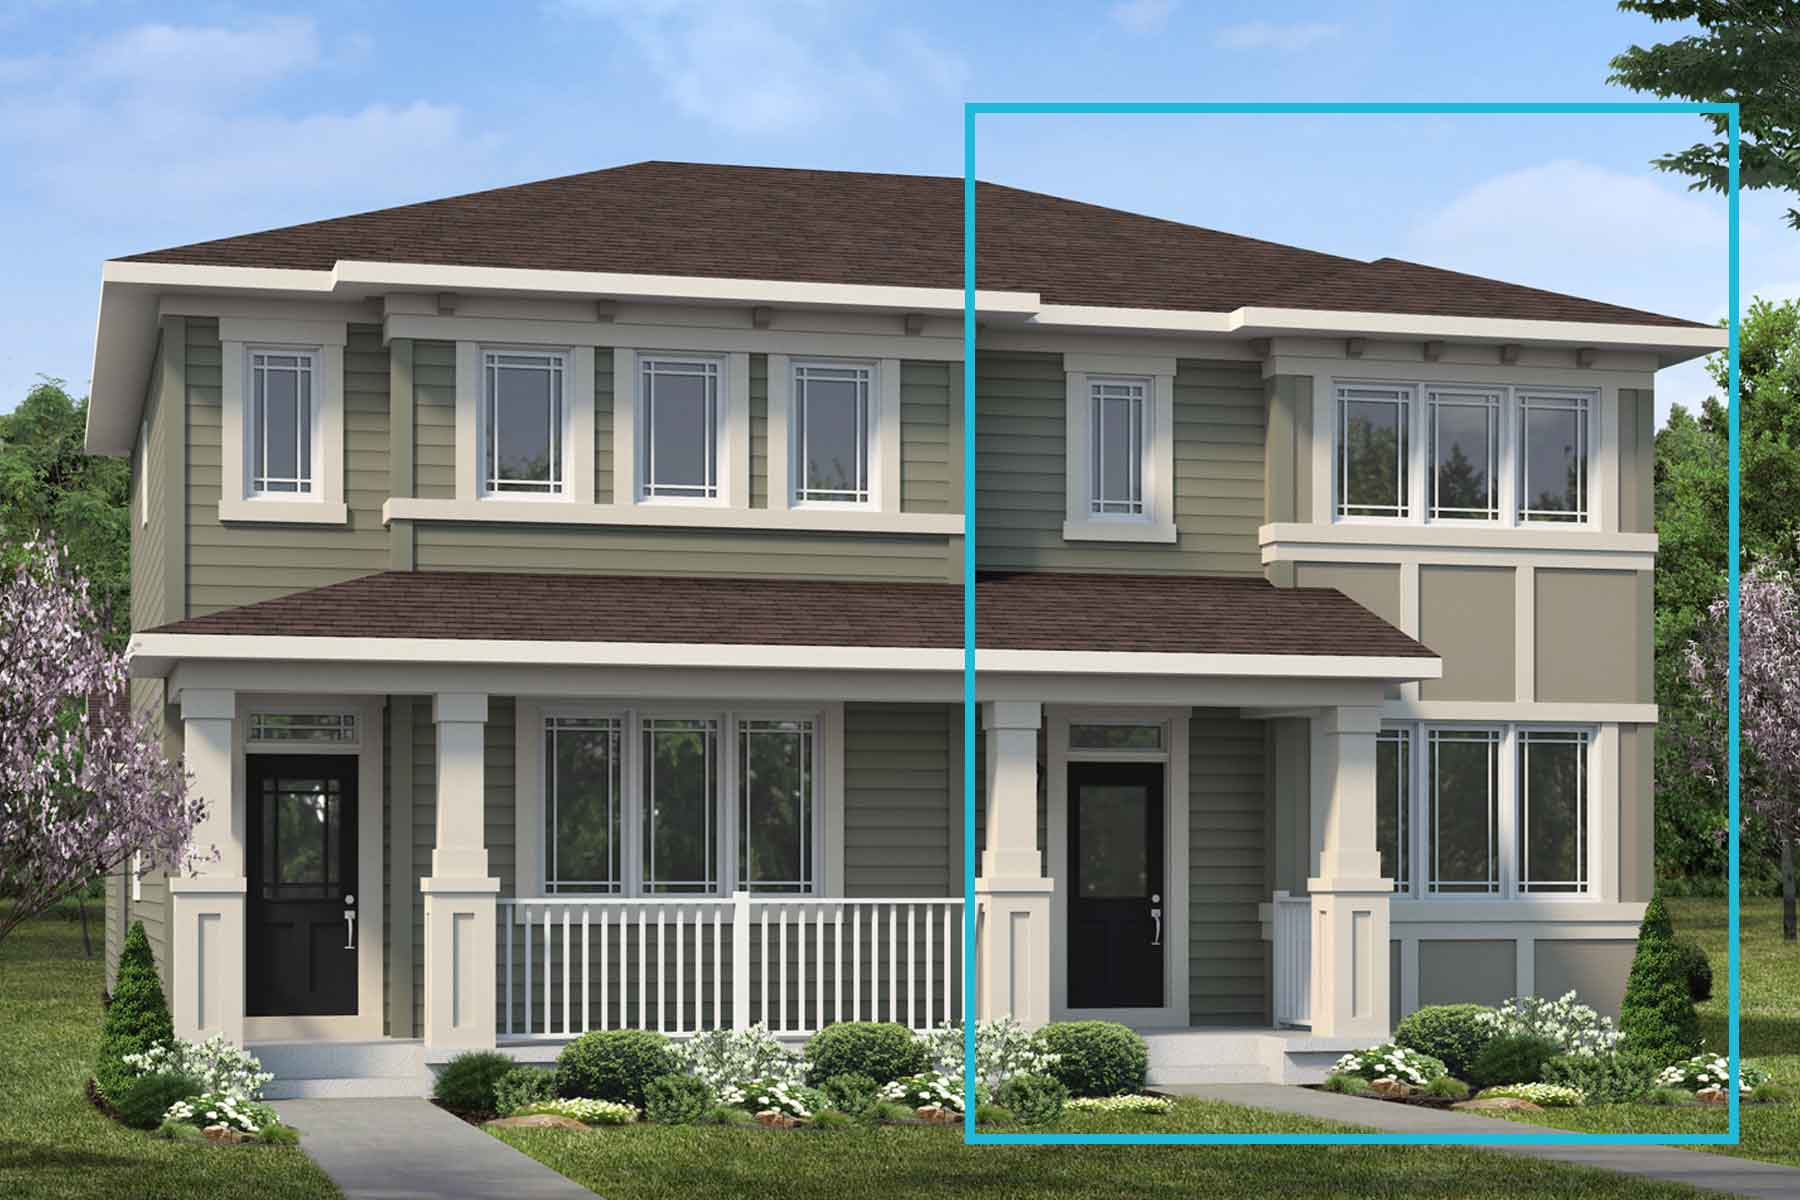 Palliser Plan elevationprairie_carrington_palliser at Carrington in Calgary Alberta by Mattamy Homes